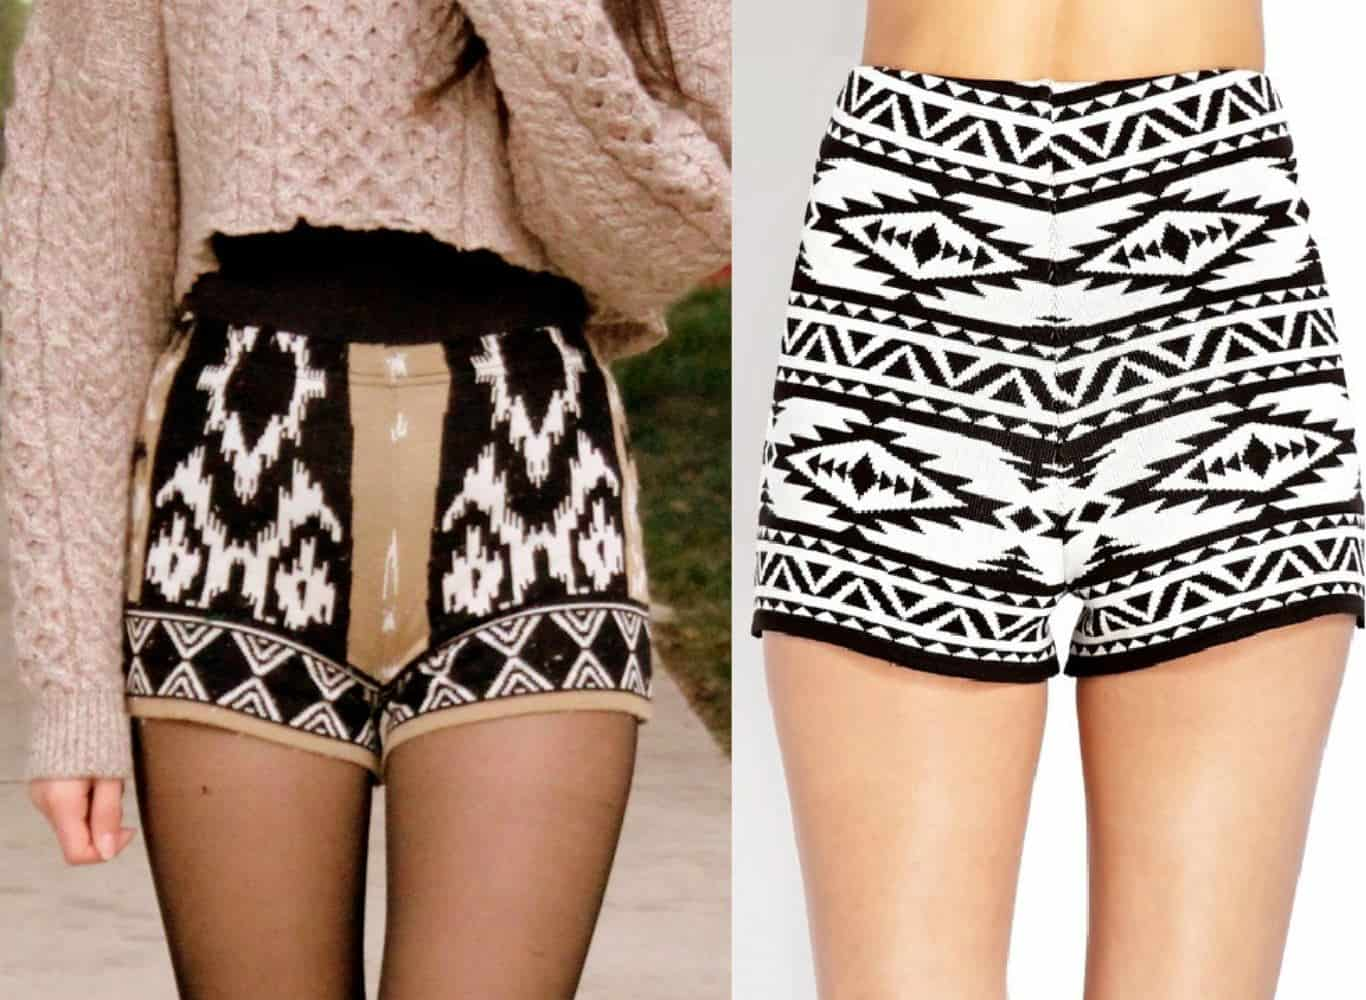 Womens-knit-shorts-womens-shorts-2017-fashion-trends-2017